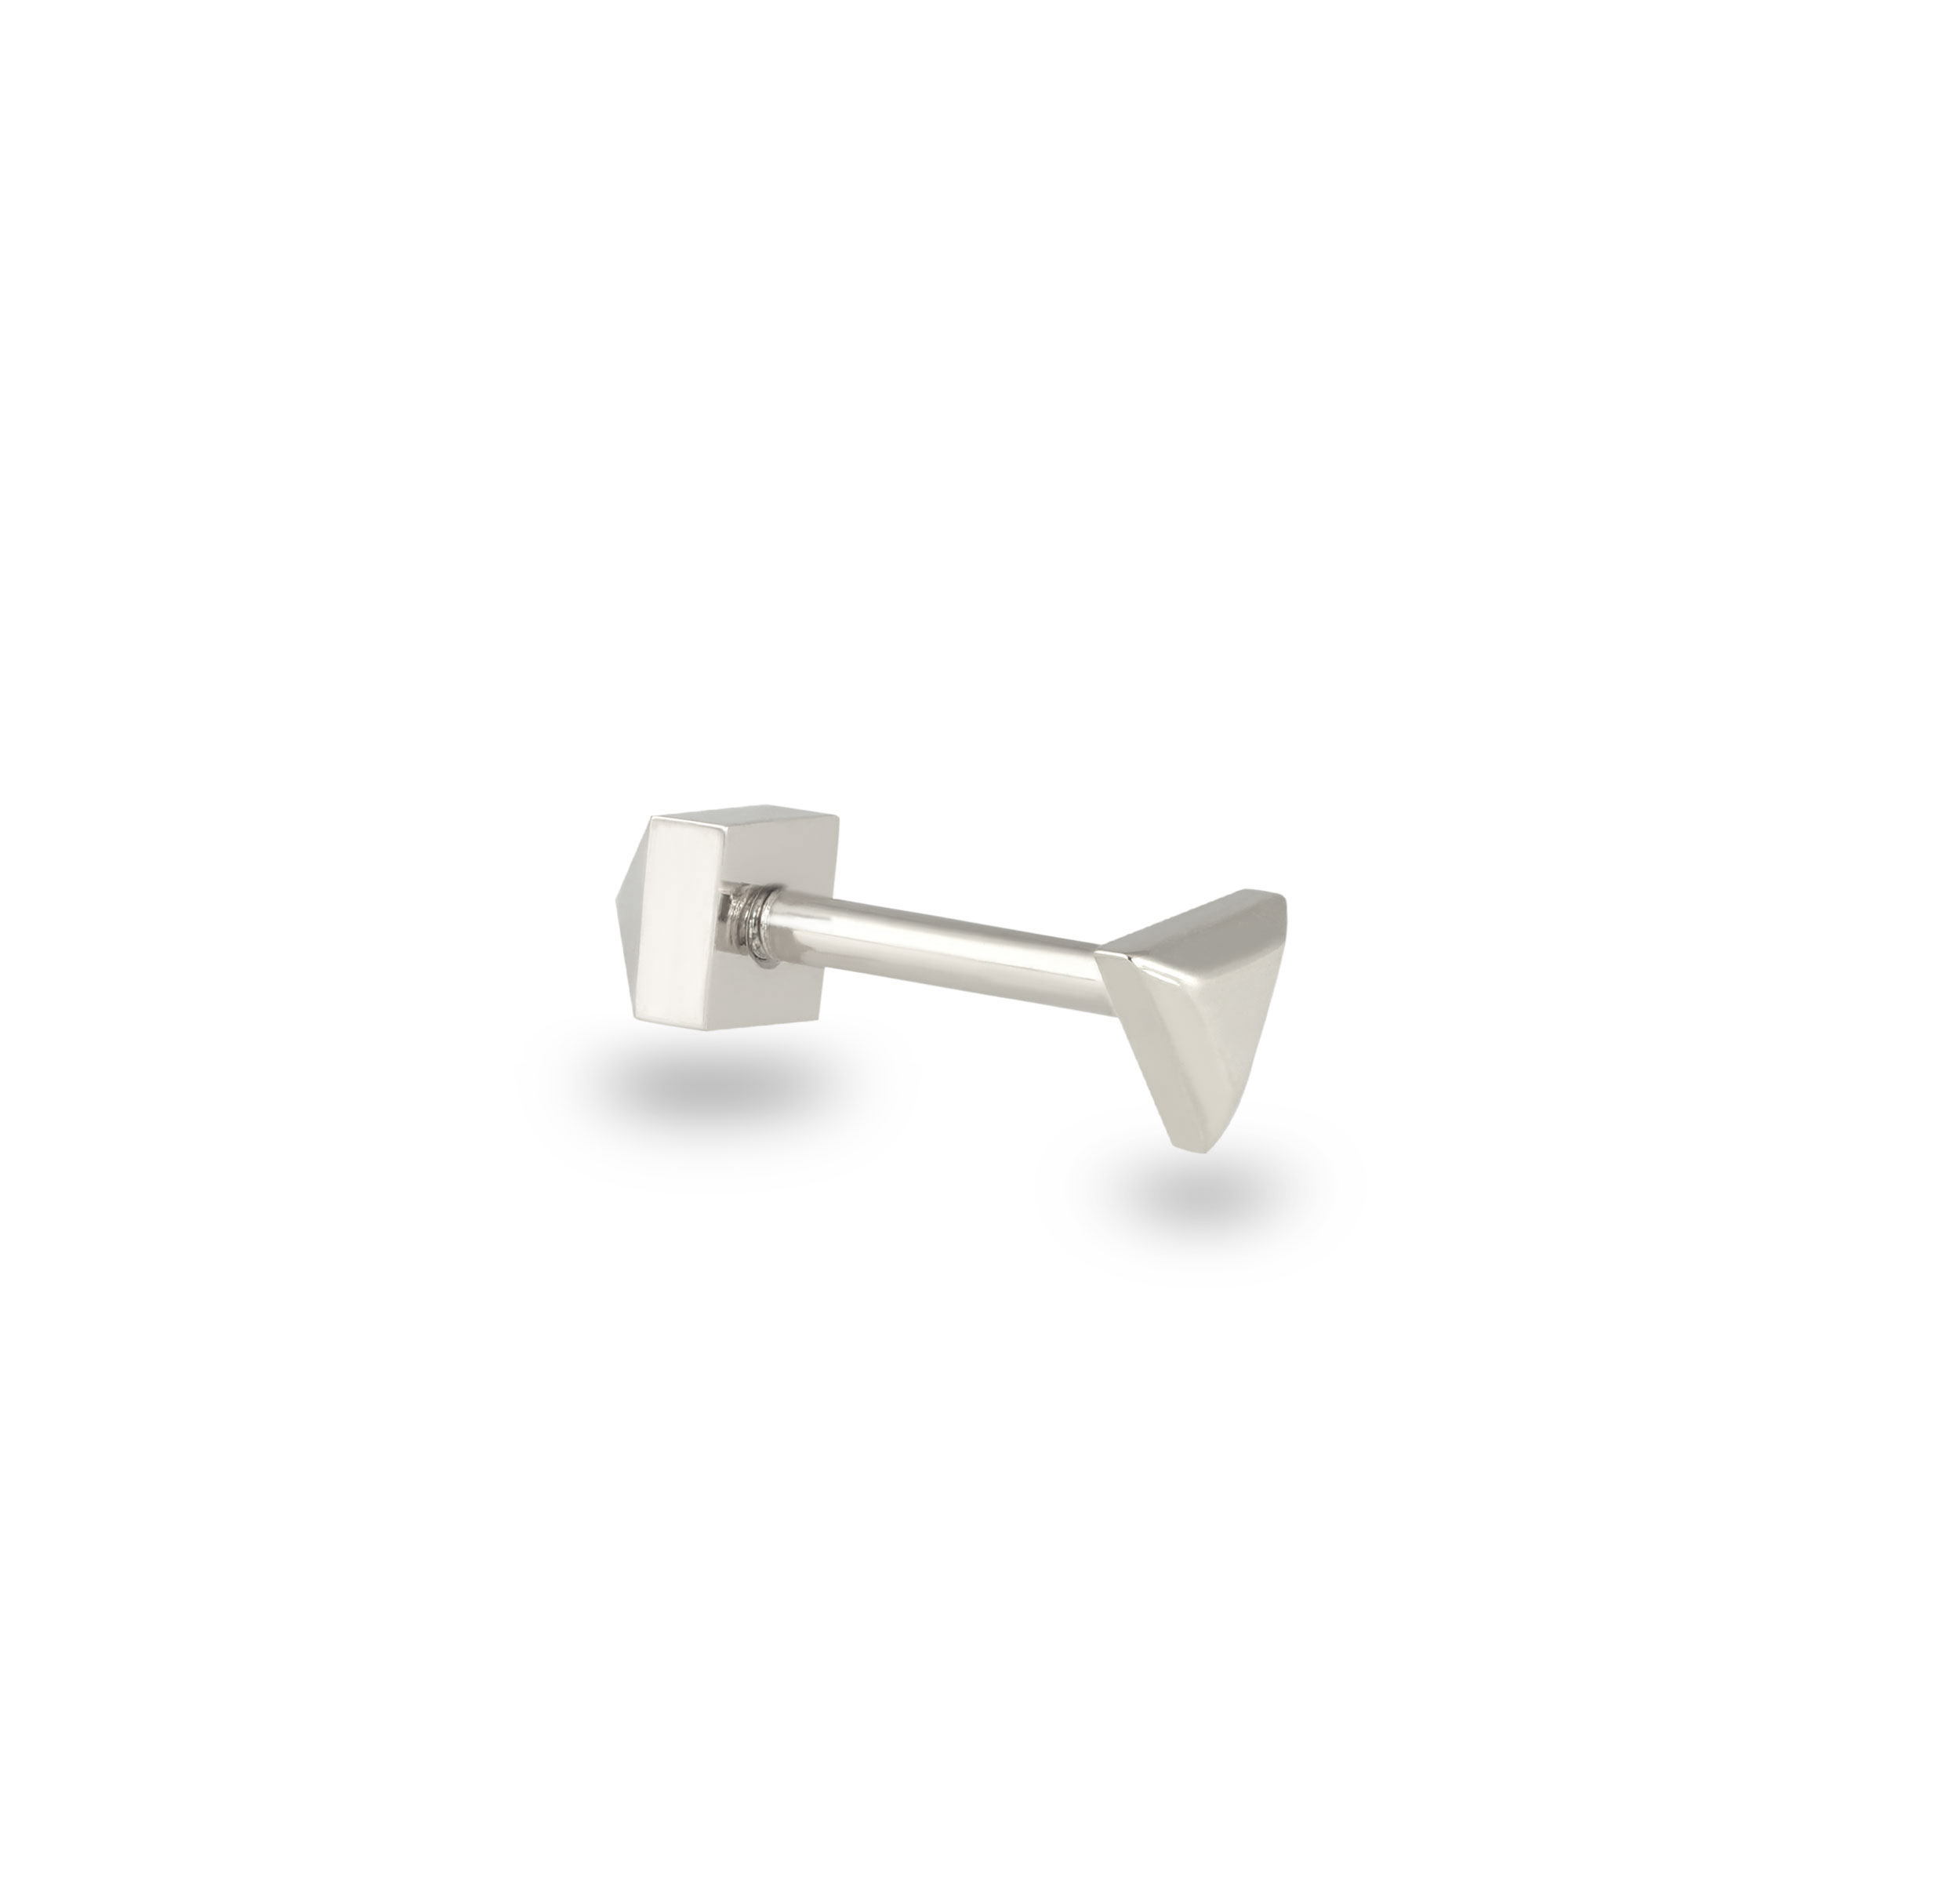 white-plain-minimalistic-piercing-studs-screw-backs-gold-buy-online-lena-cohen-uk-18-k-gold-piercings-london